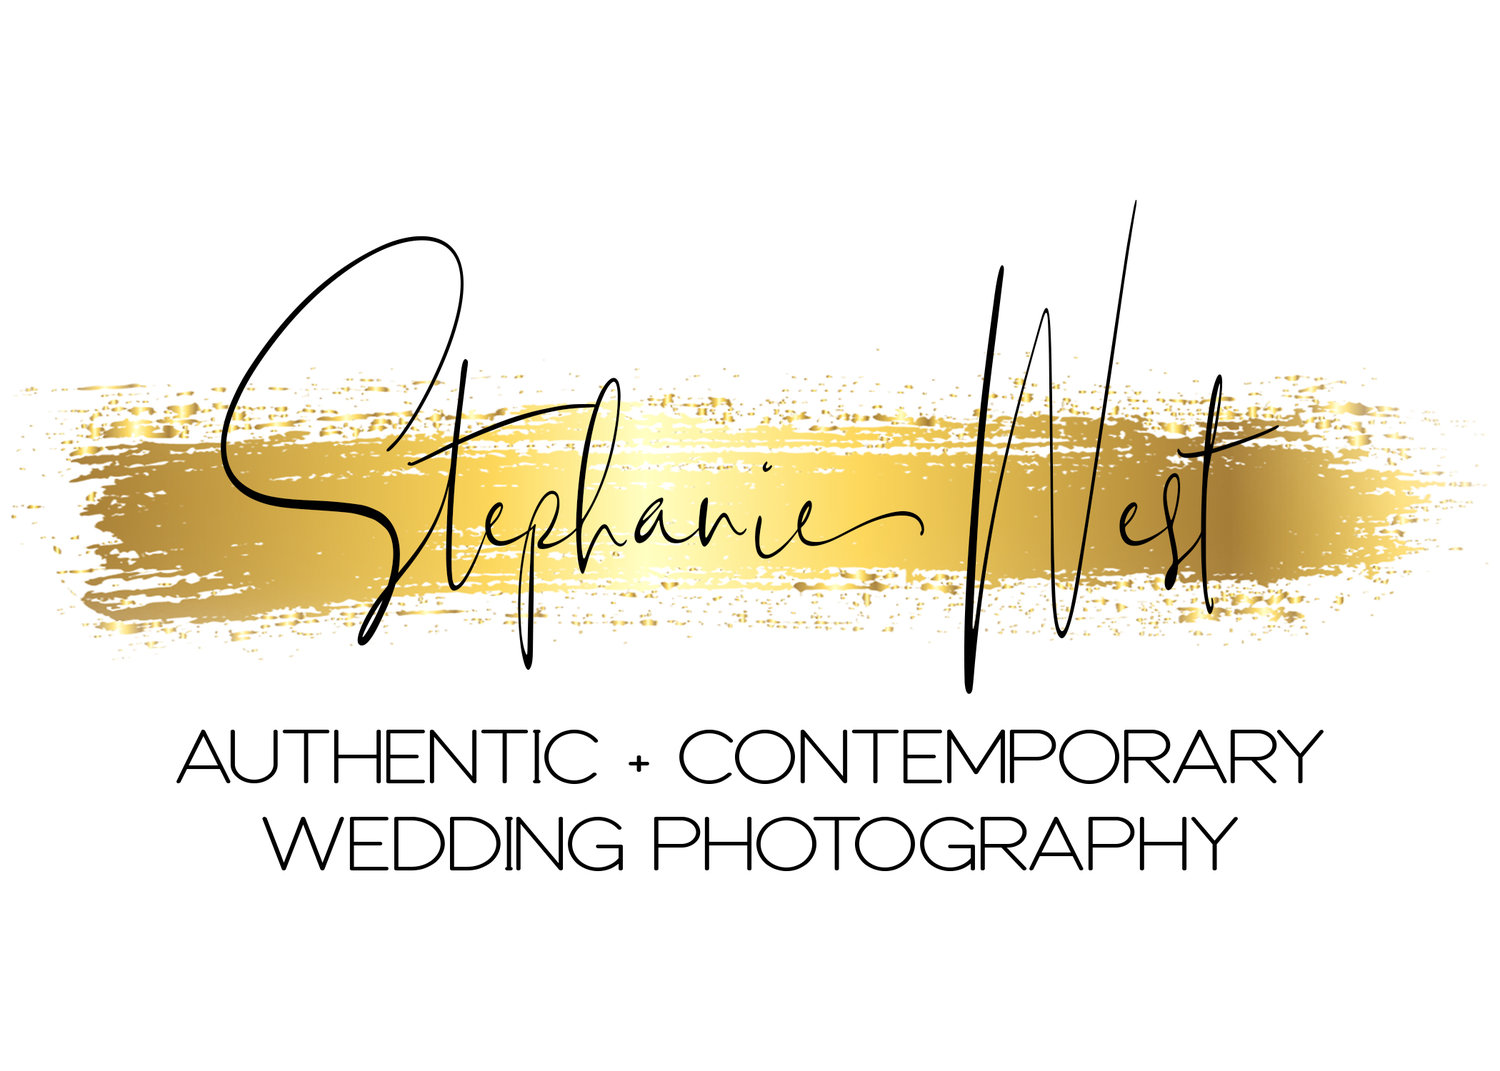 Stephanie West Photography